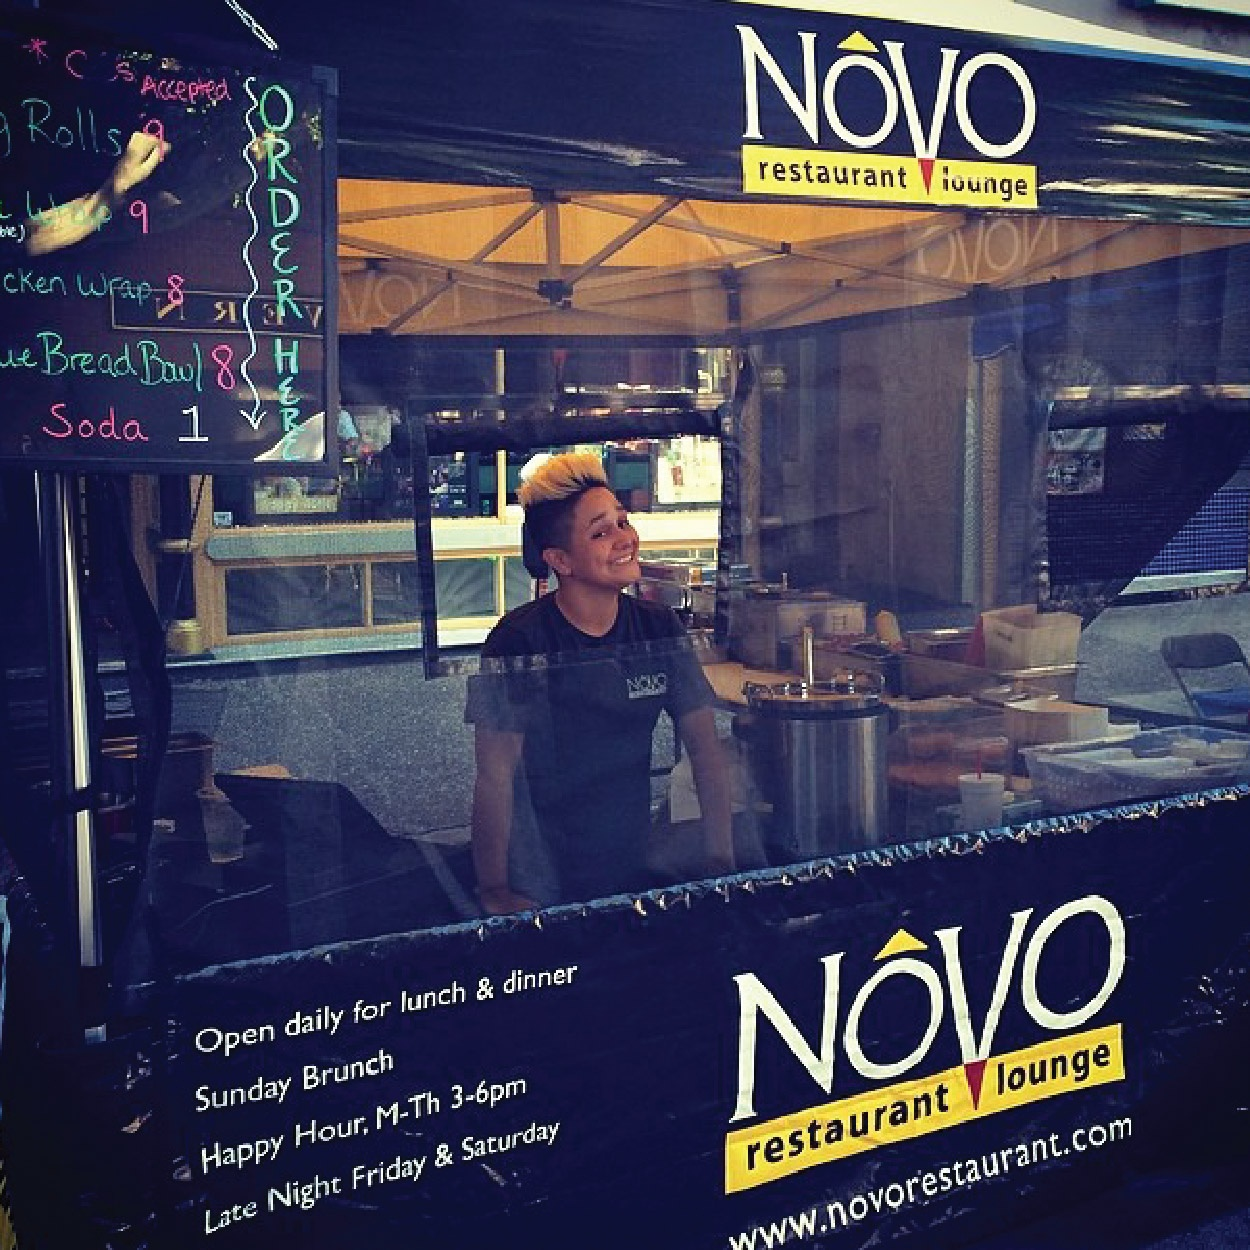 Novo restaurant lounge mobile food booth canopy